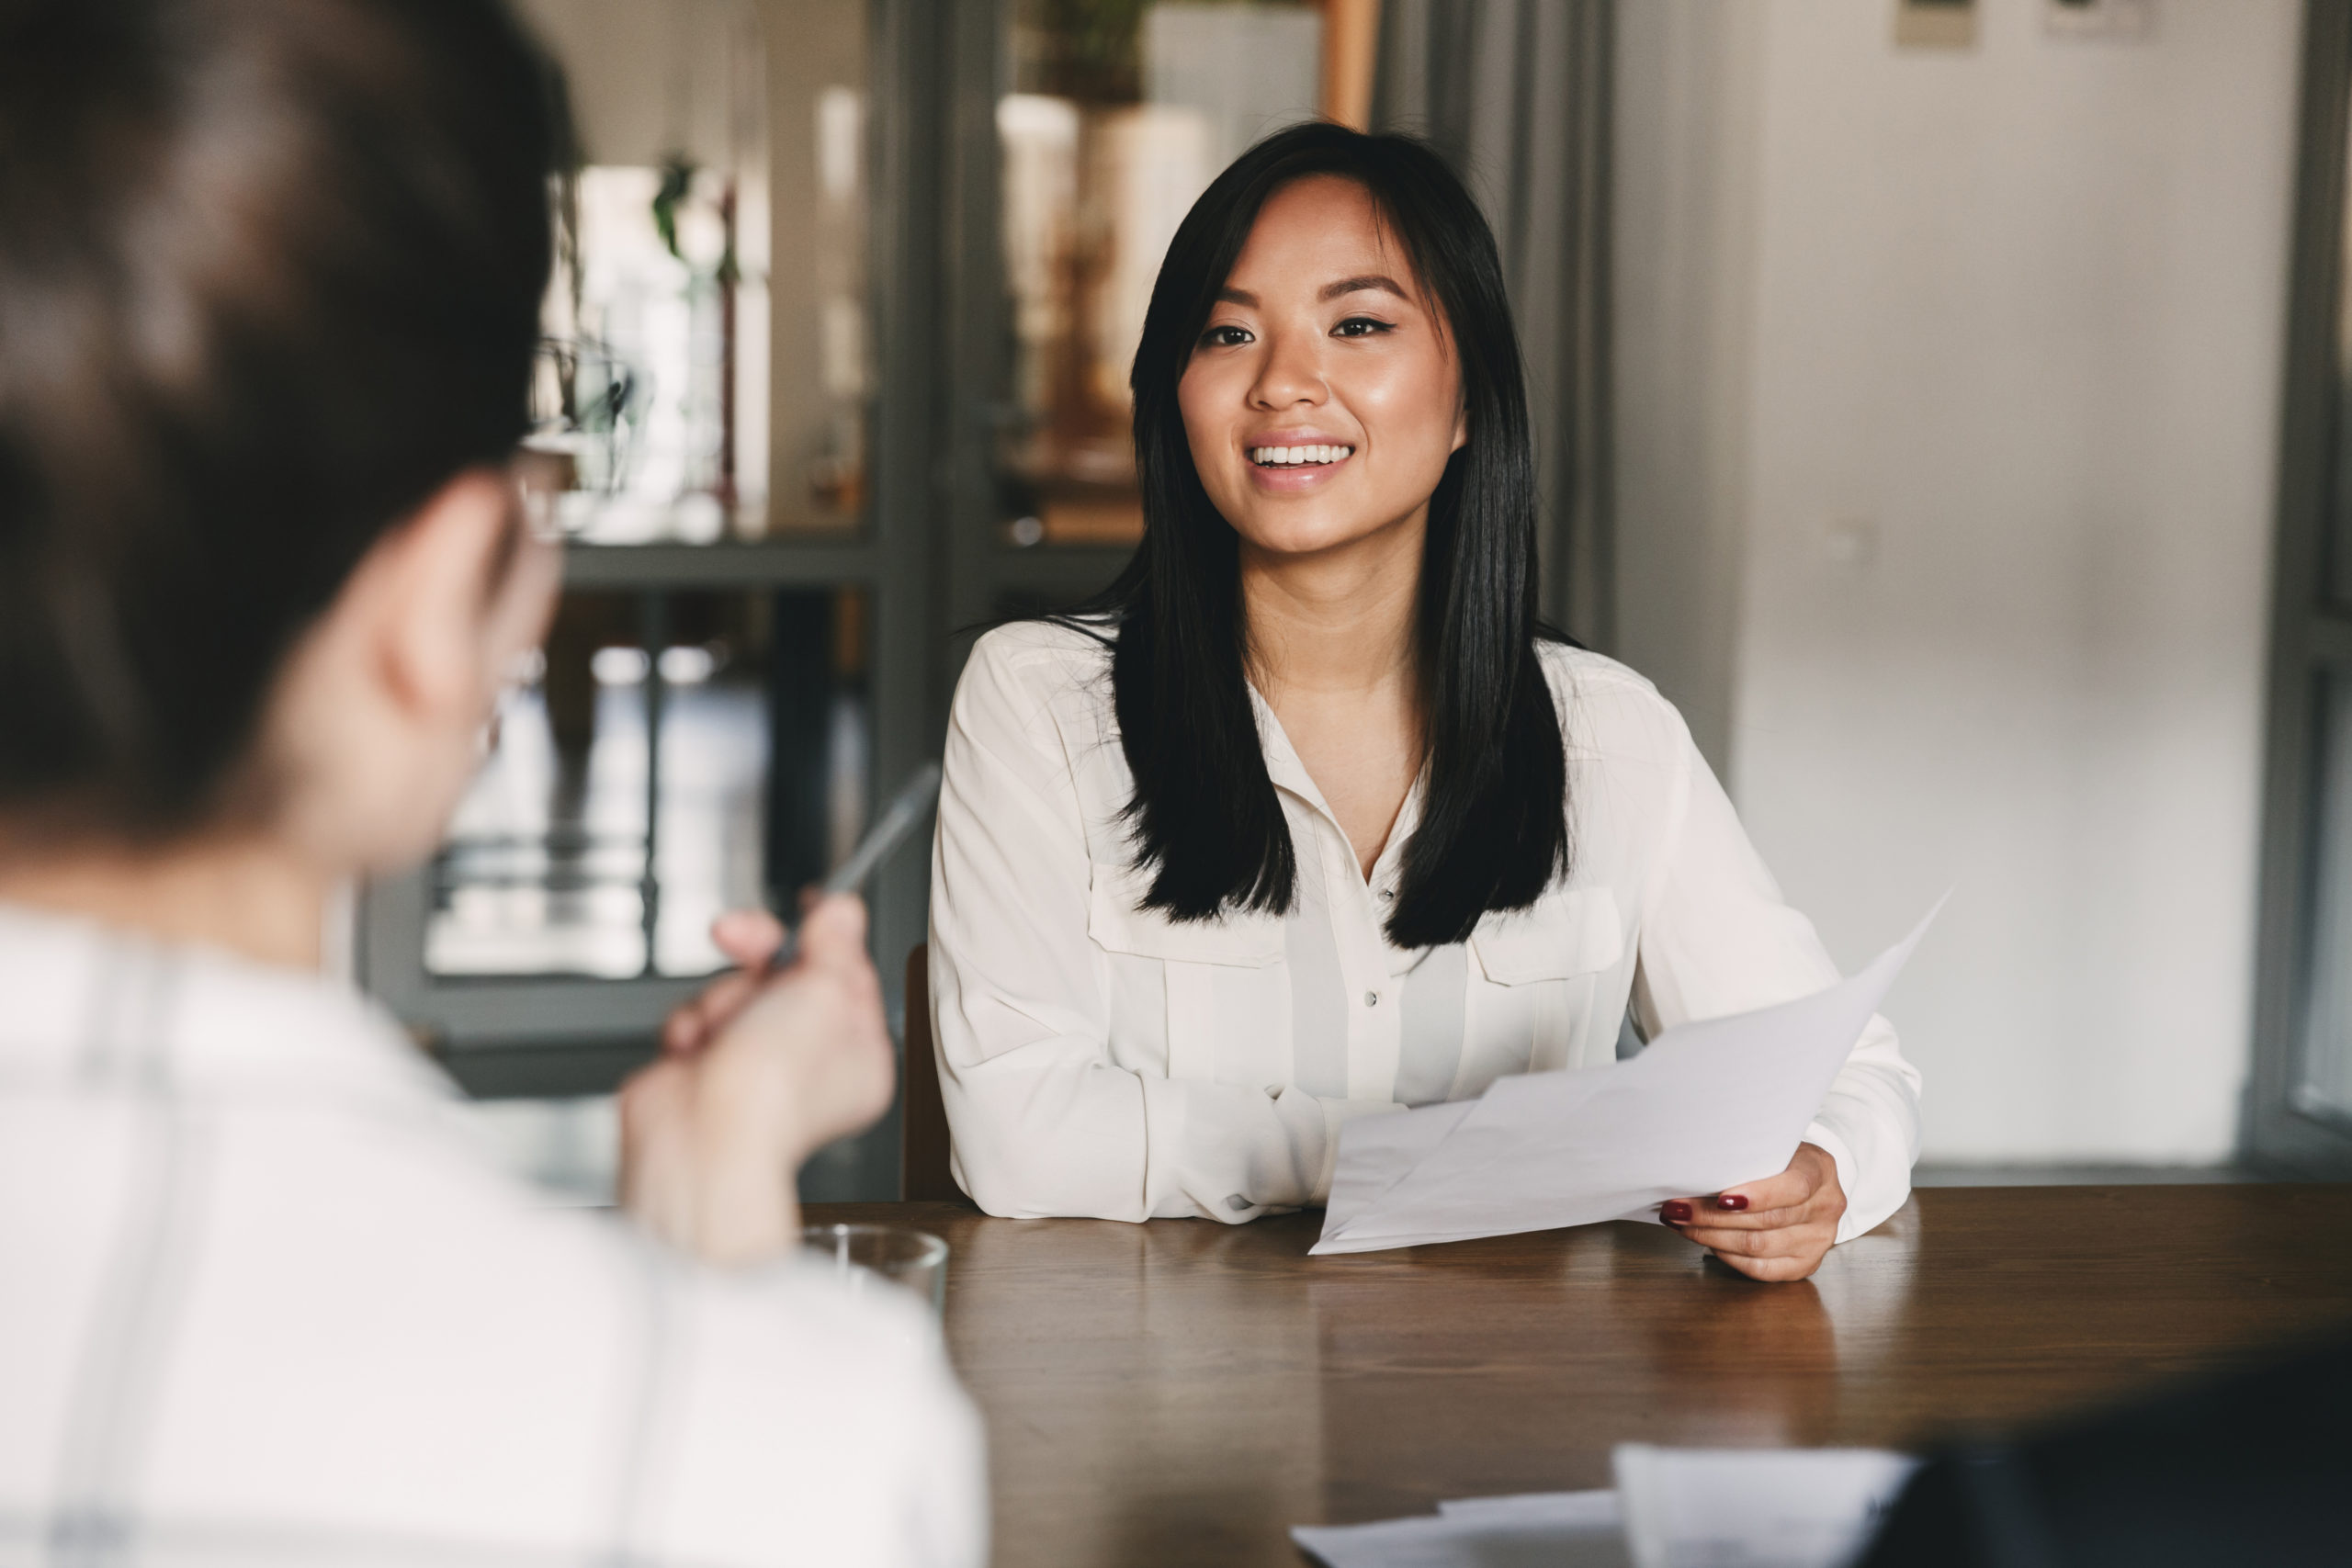 Business, career and placement concept - joyful asian woman smiling and holding resume while sitting in front of directors during corporate meeting or job interview